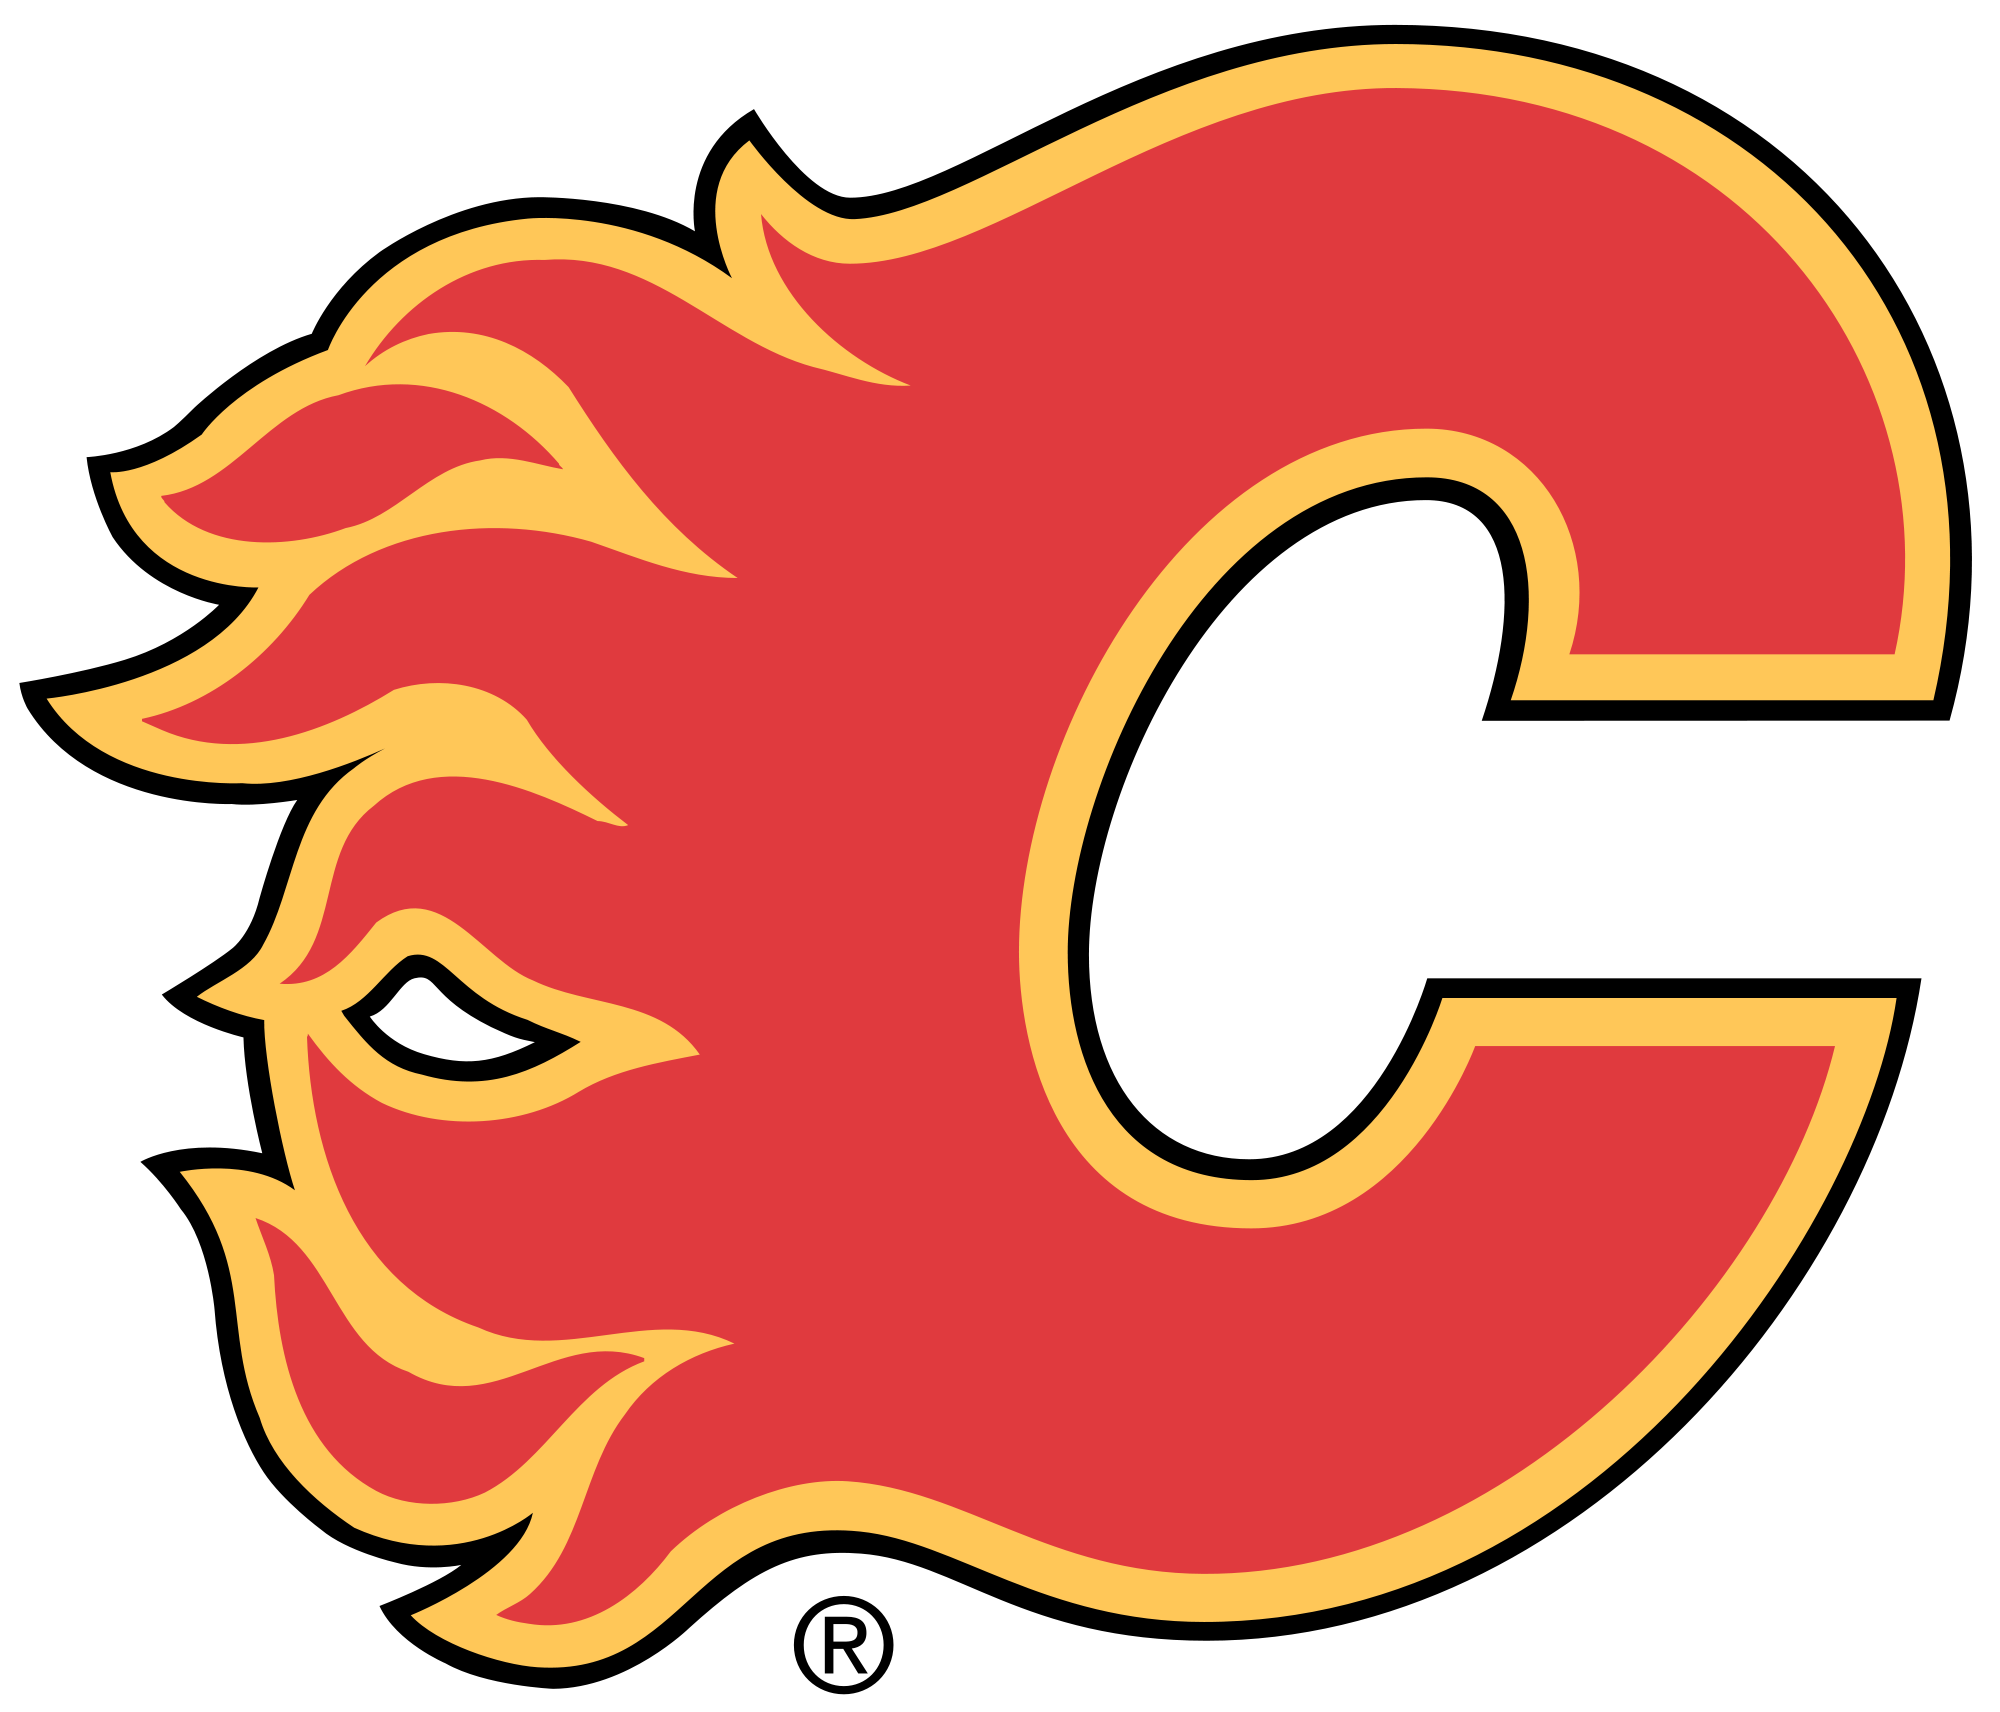 NHL Calgary Flames Logo Wallpaper Flames hockey, Calgary